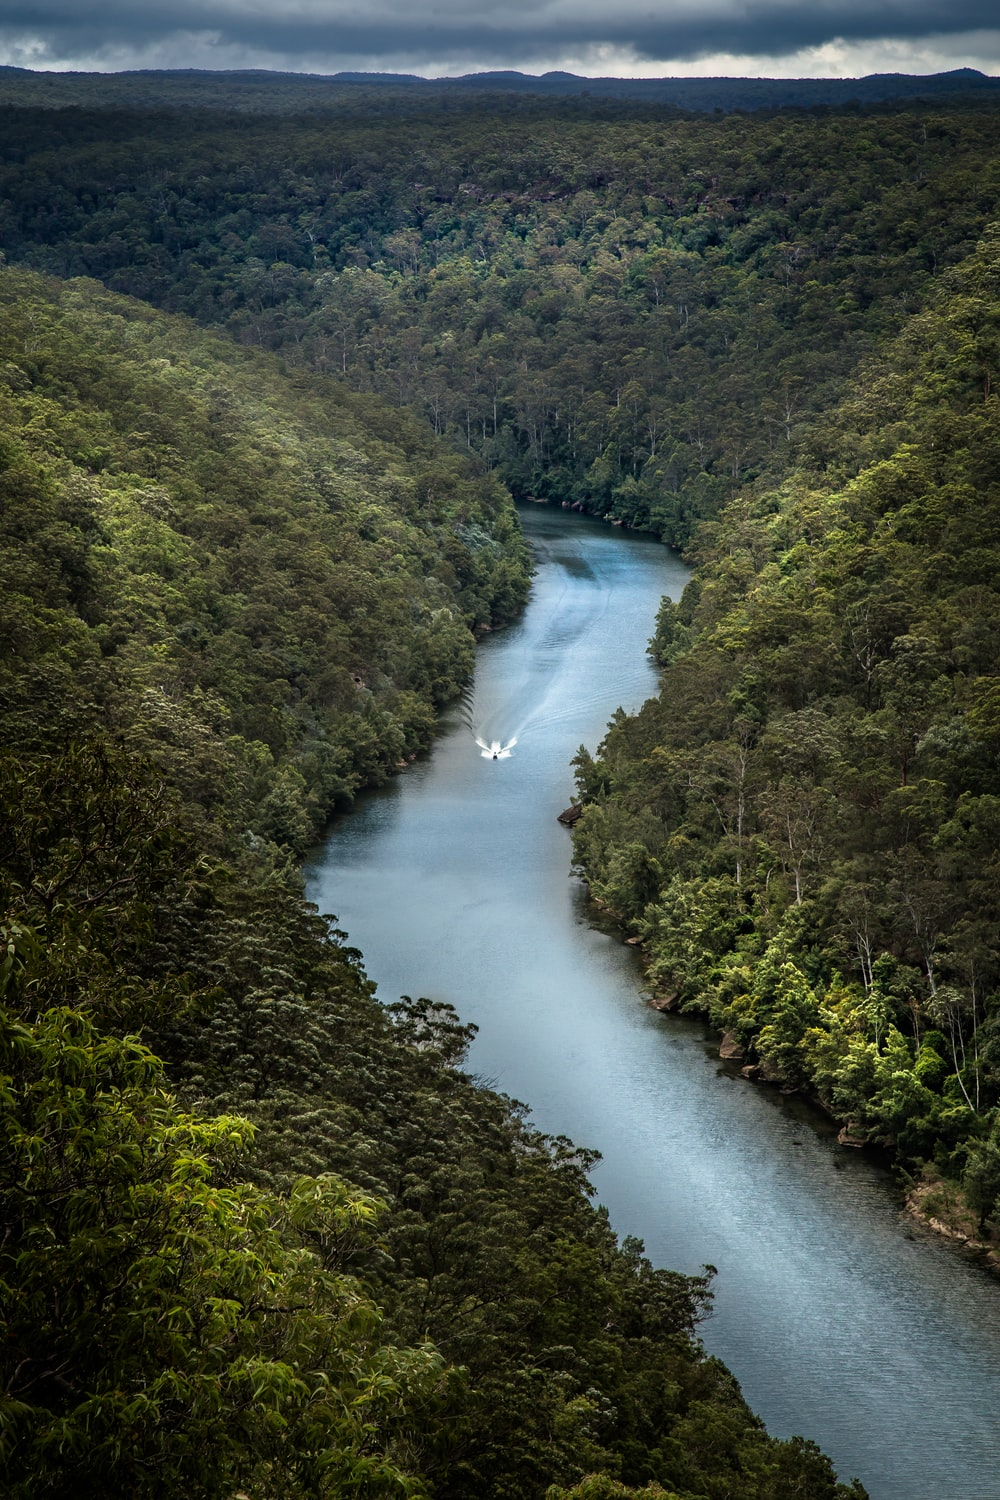 white motorboat passing through the river between tree-covered hills